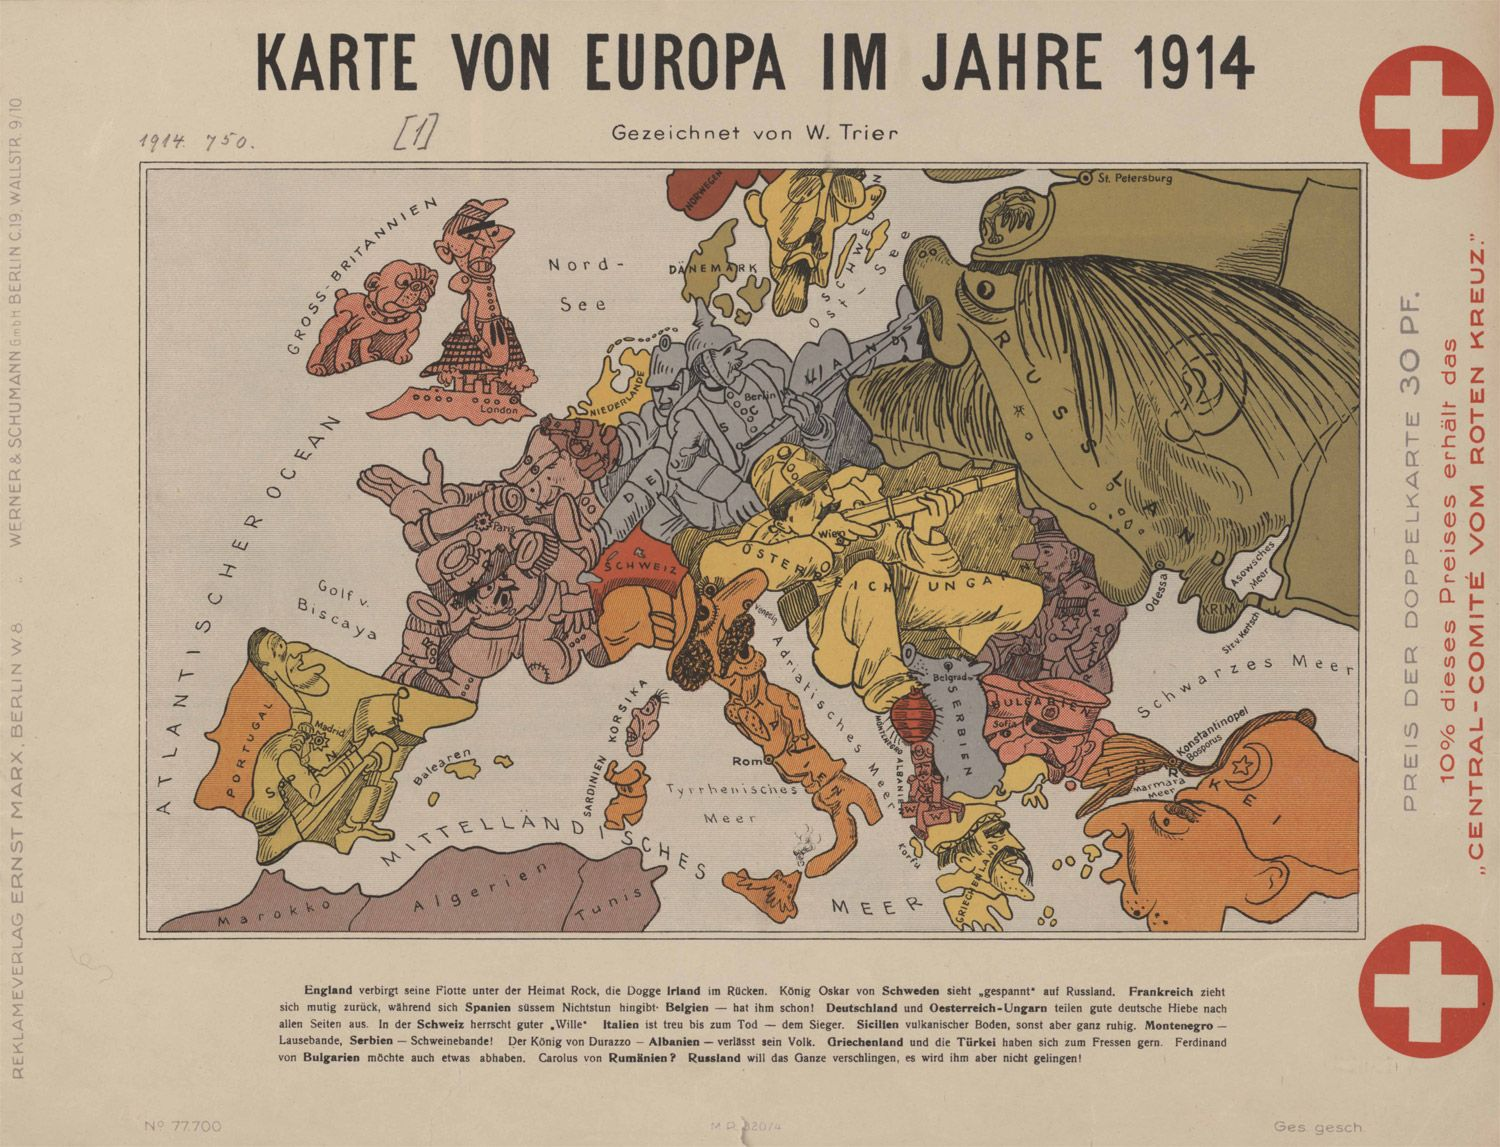 This is a satirical map of the nations of Europe as seen in 1914